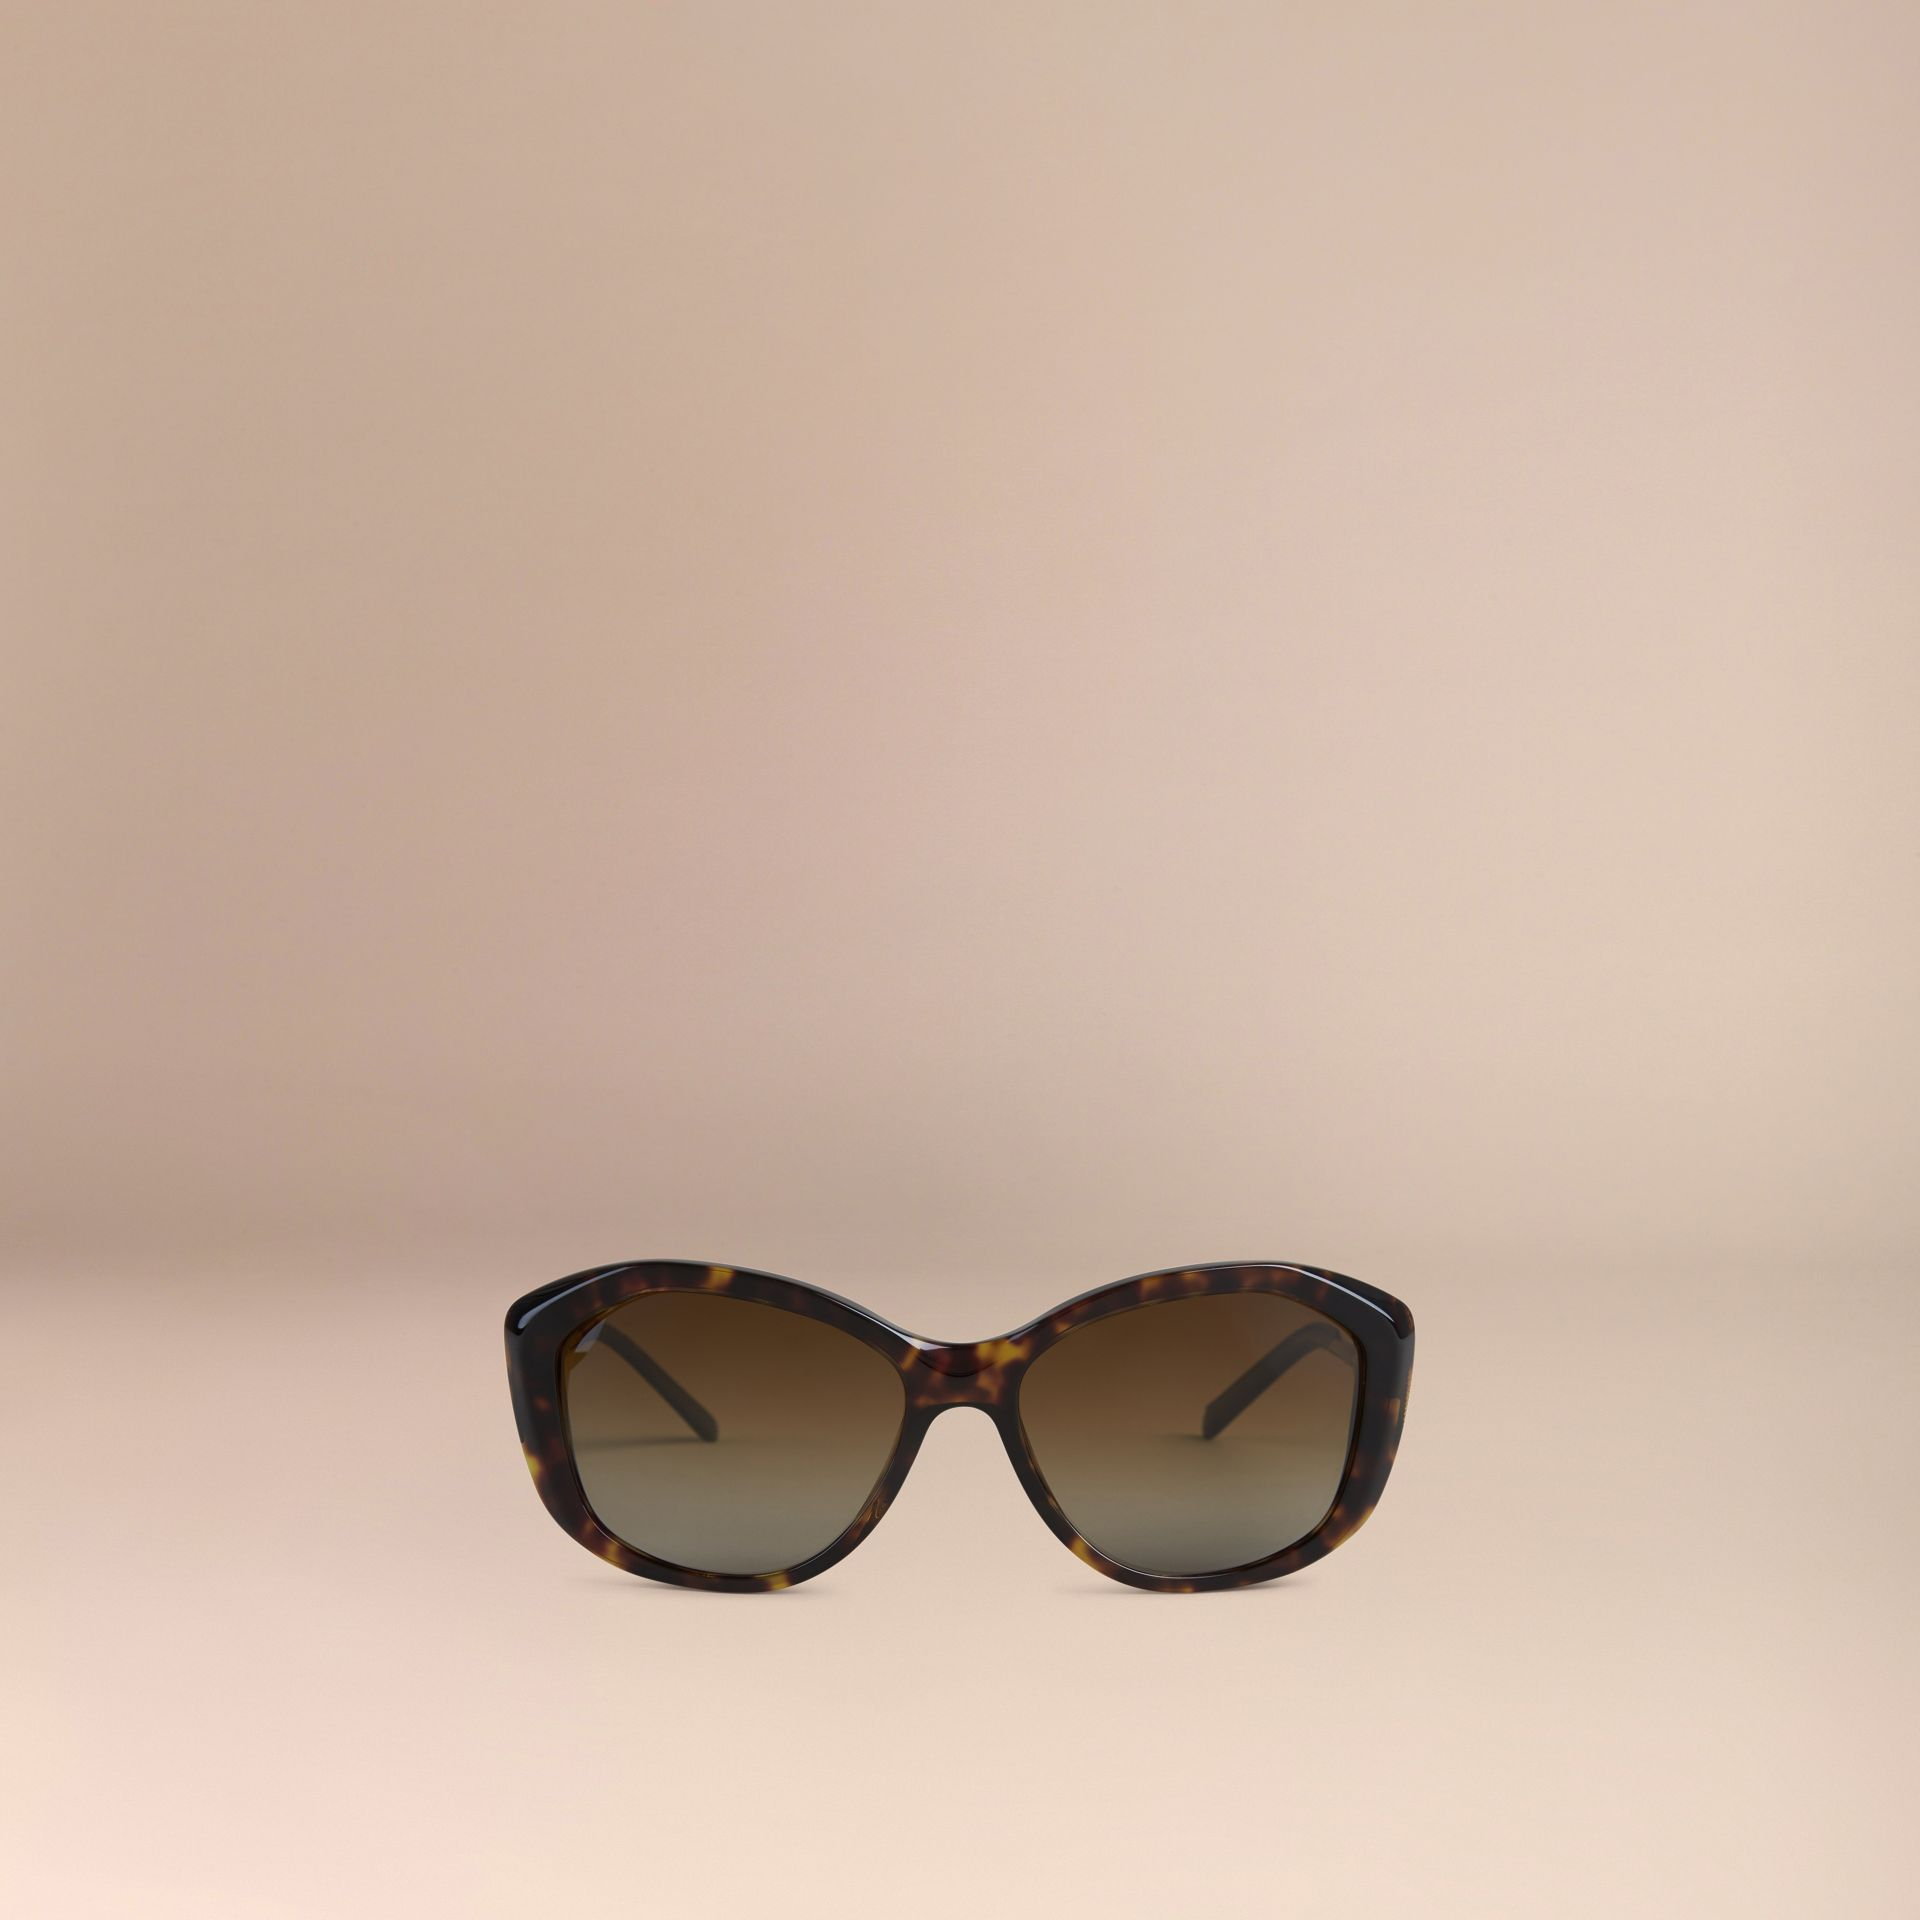 Gabardine Collection Square Frame Sunglasses in Tortoise Shell - gallery image 2